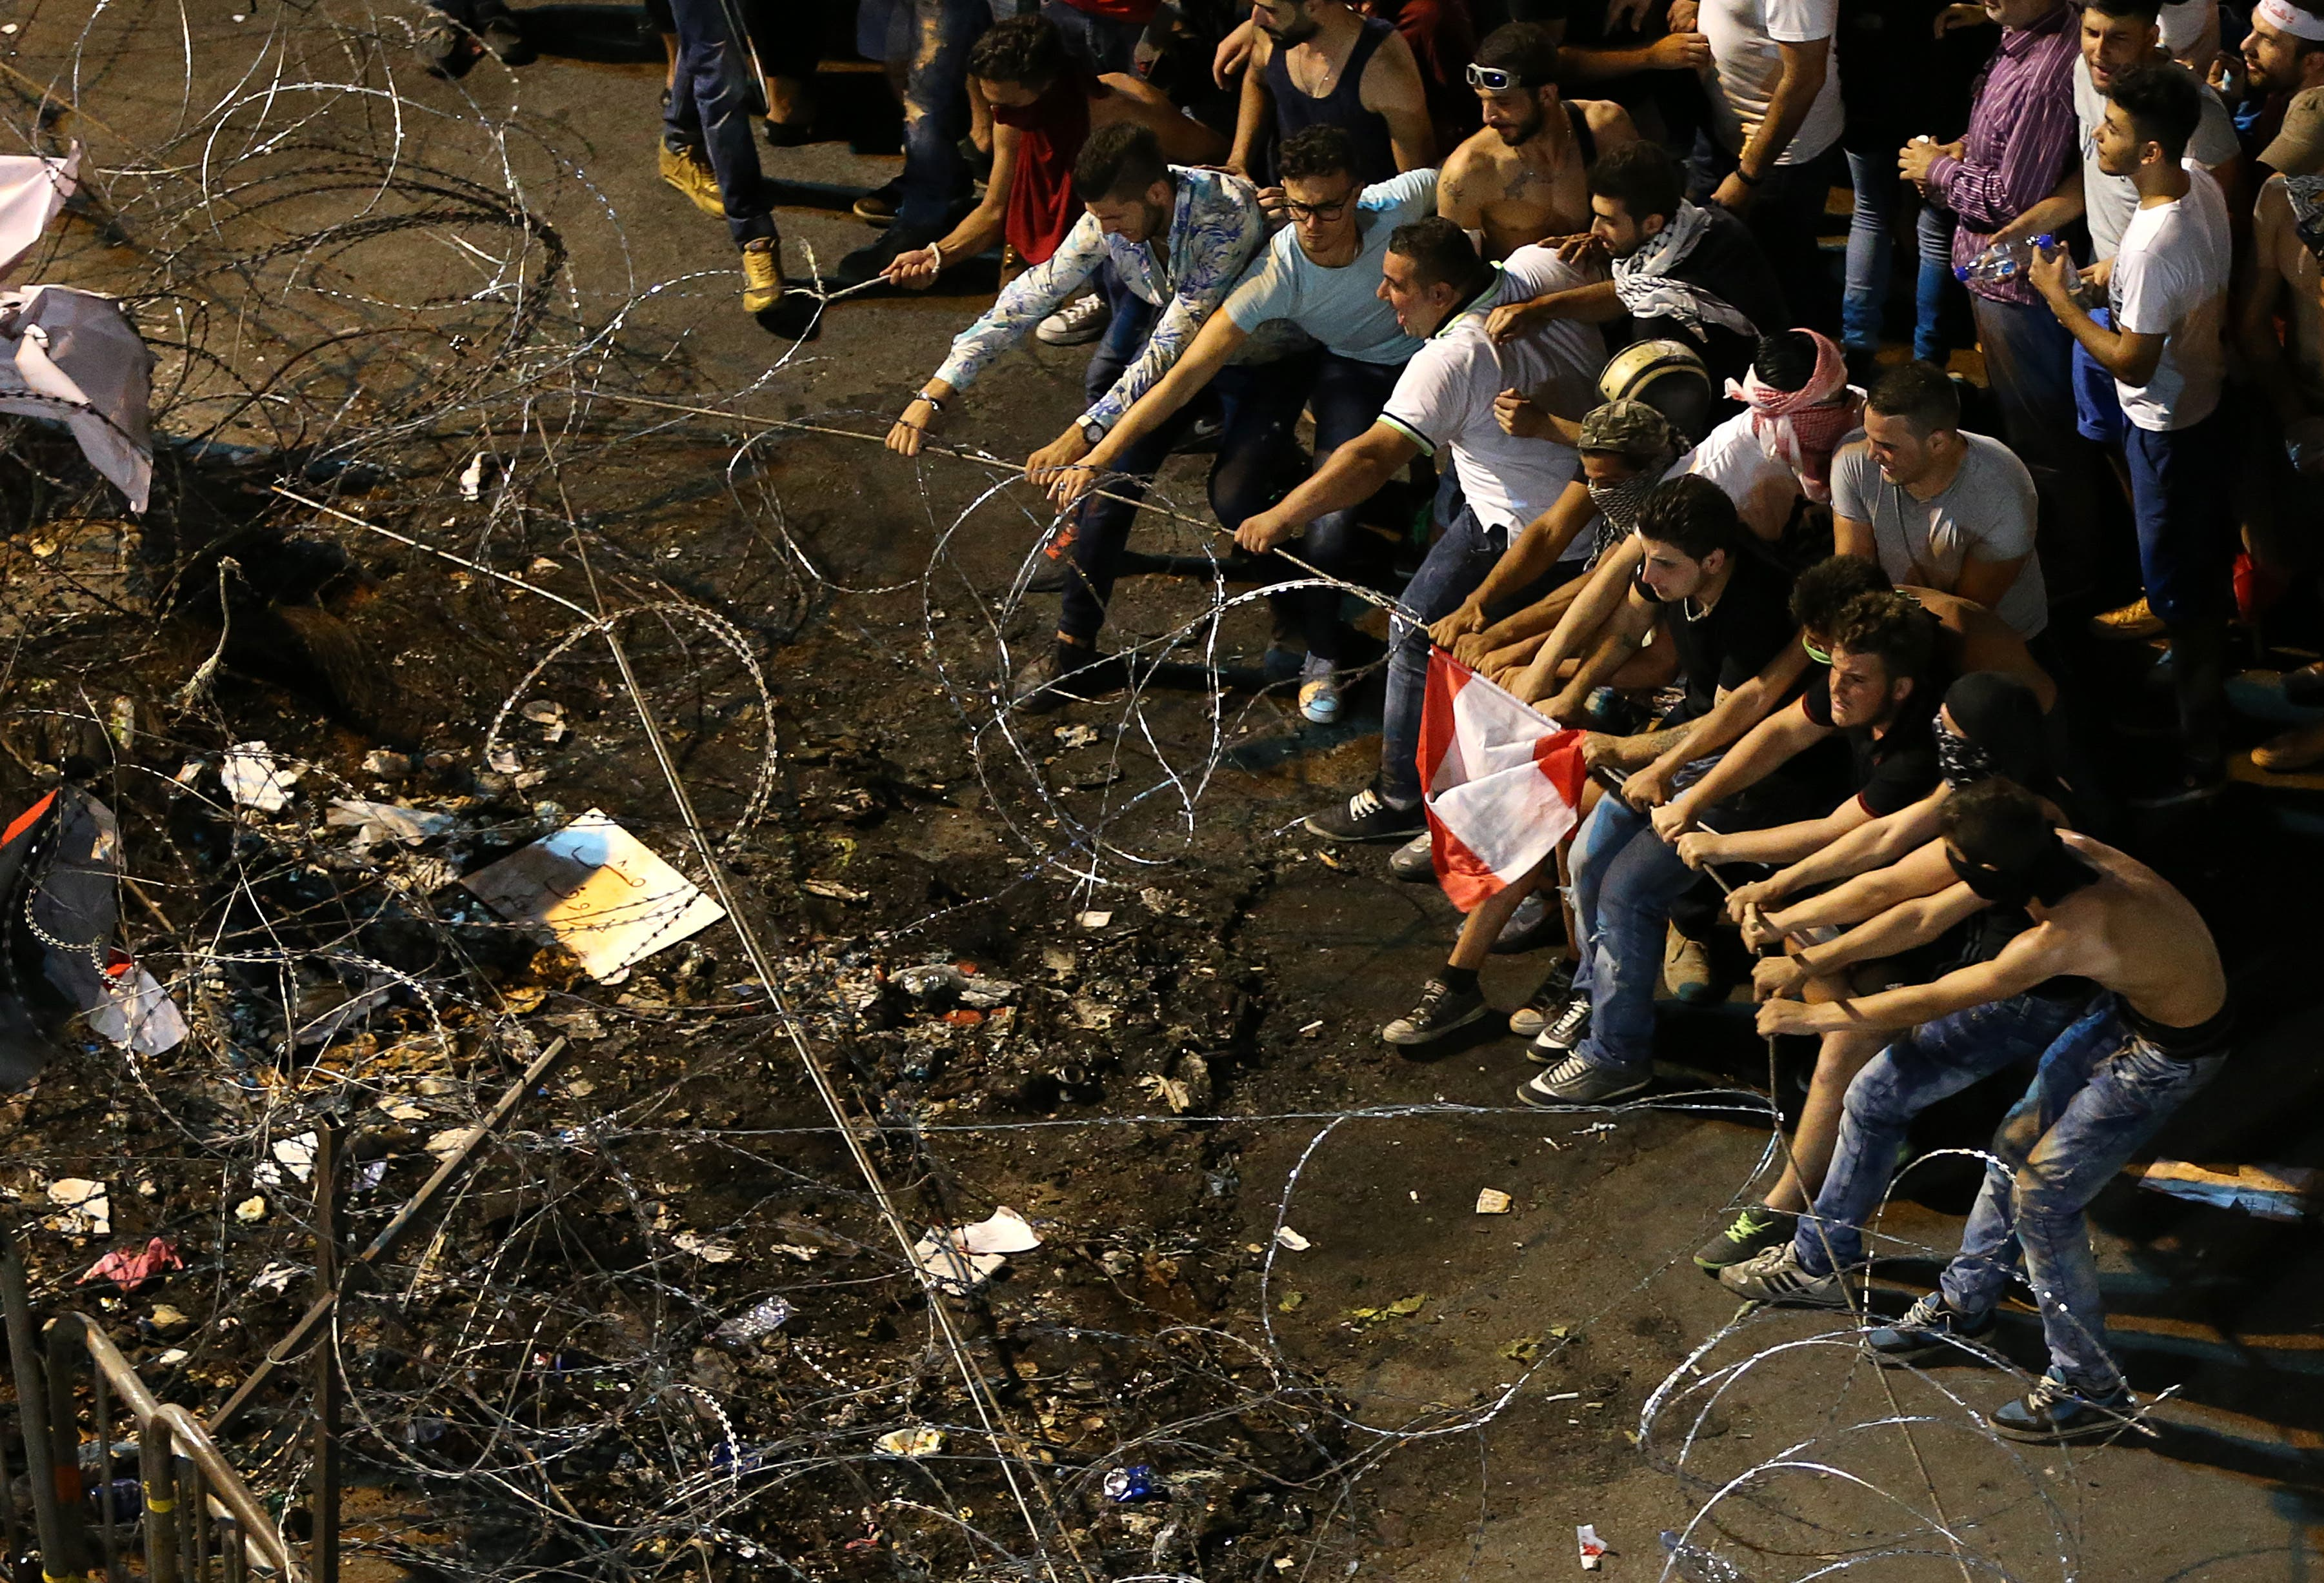 Lebanese anti-government protesters try to remove barbed wire that blocks the road to the government building, during a demonstration in downtown Beirut, Lebanon, Saturday, Aug. 29, 2015.  (AP)